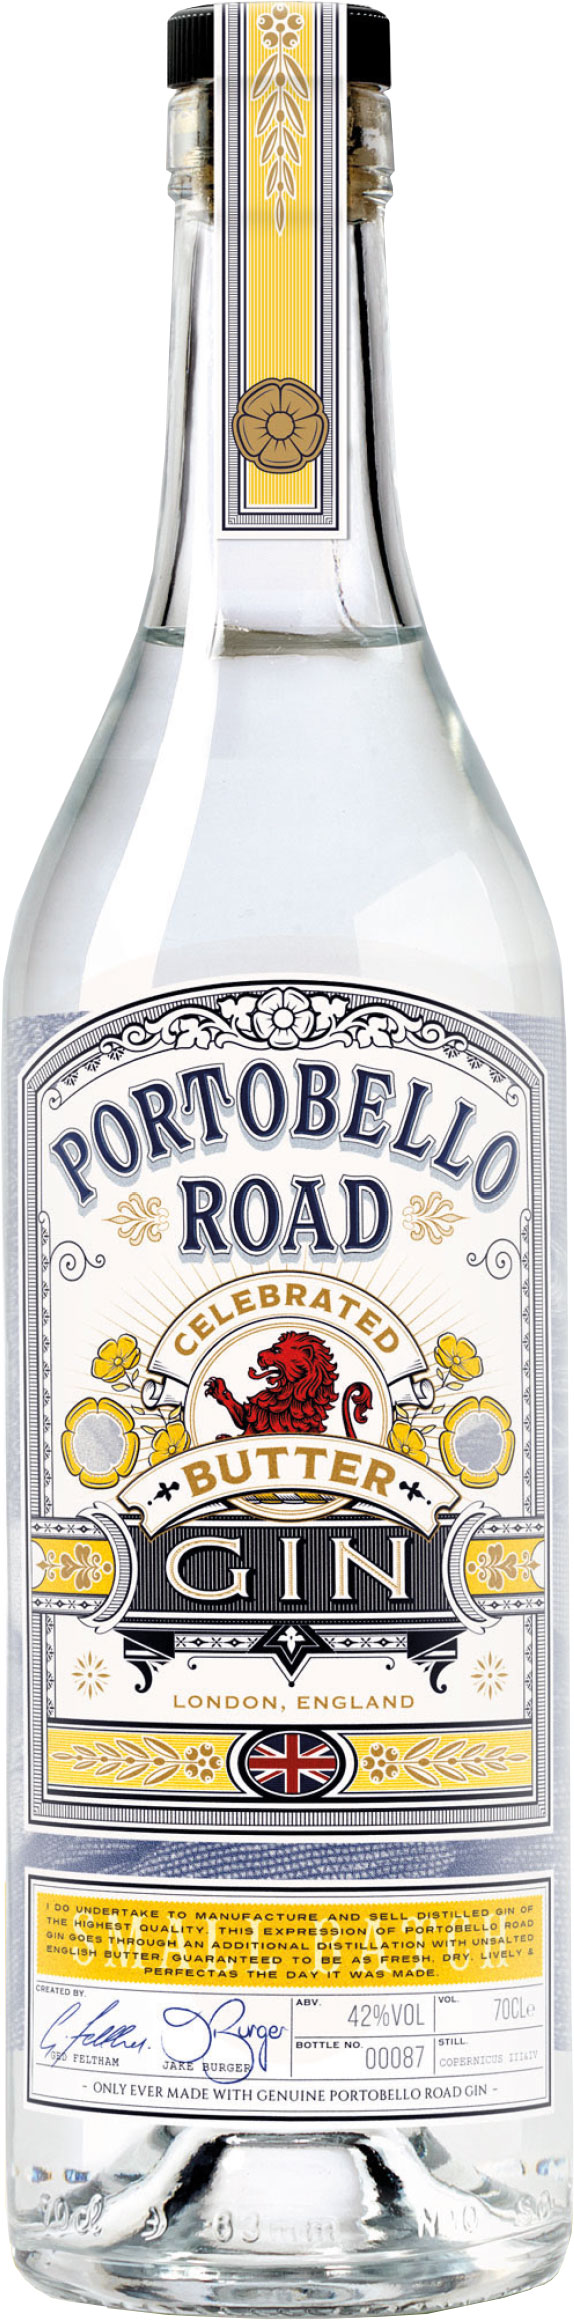 Portobello Road - Celebrated Butter Gin 70cl Bottle